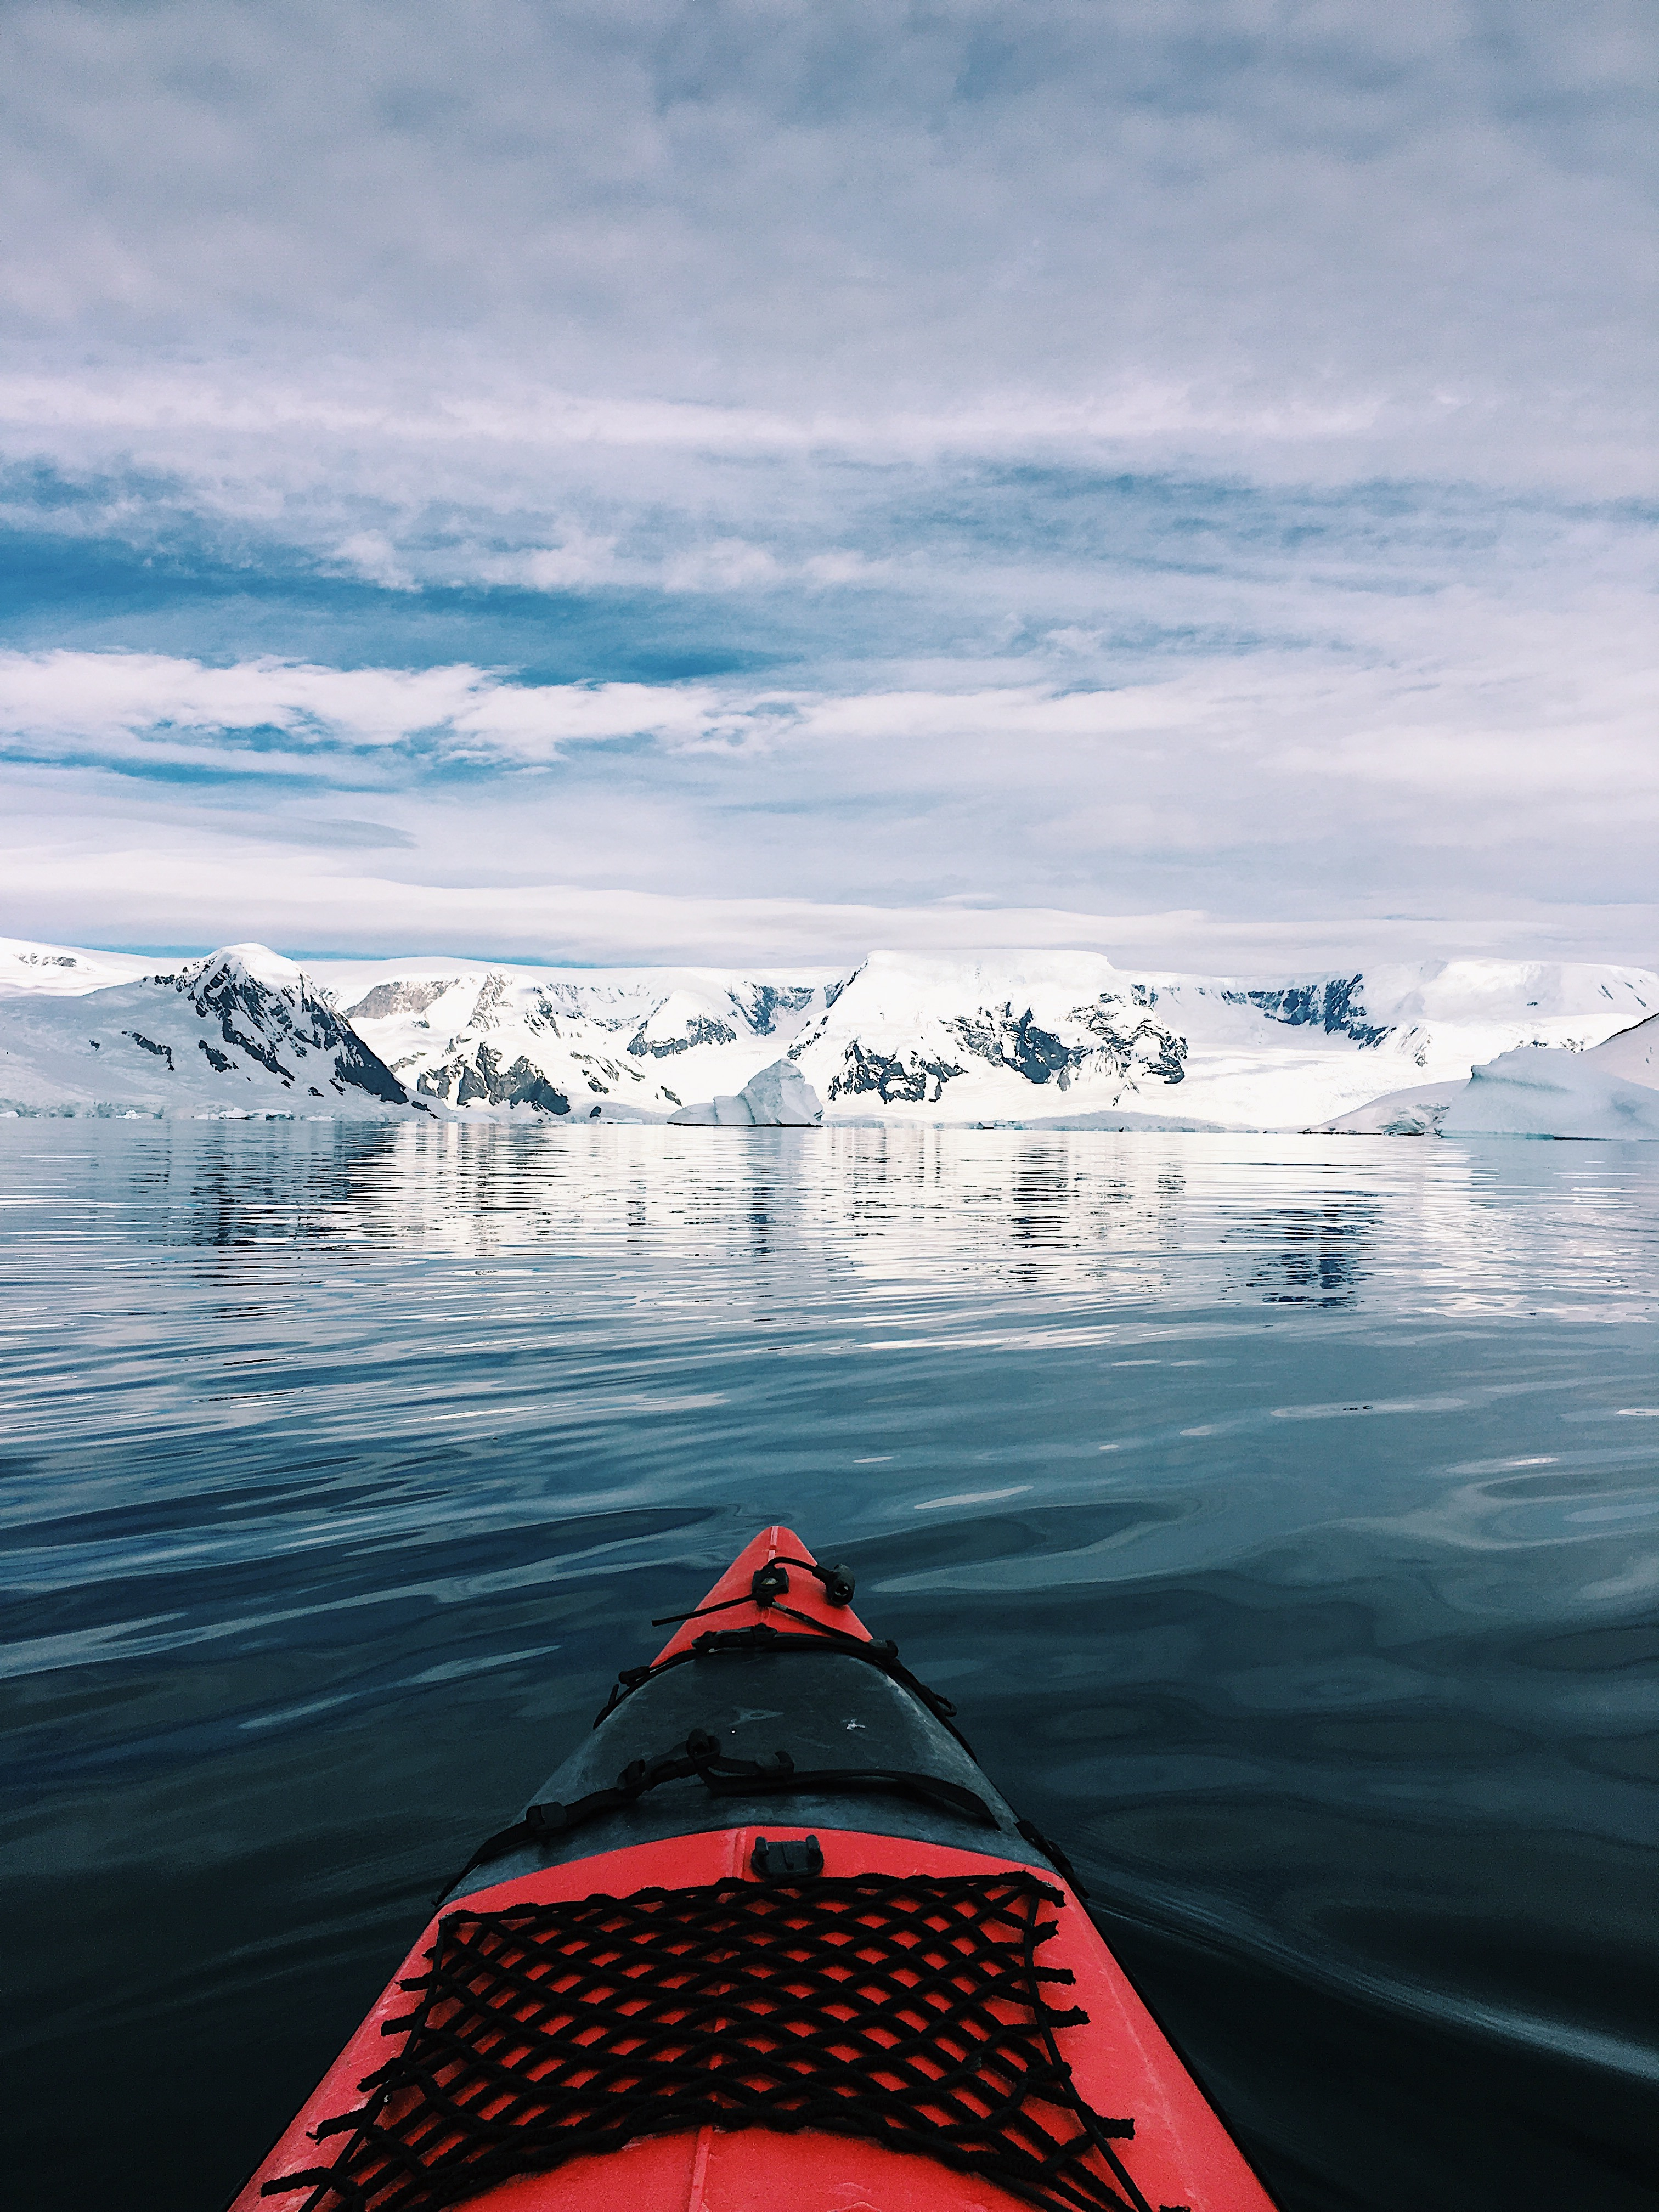 Sail forward and discover the beauty of Antarctica.